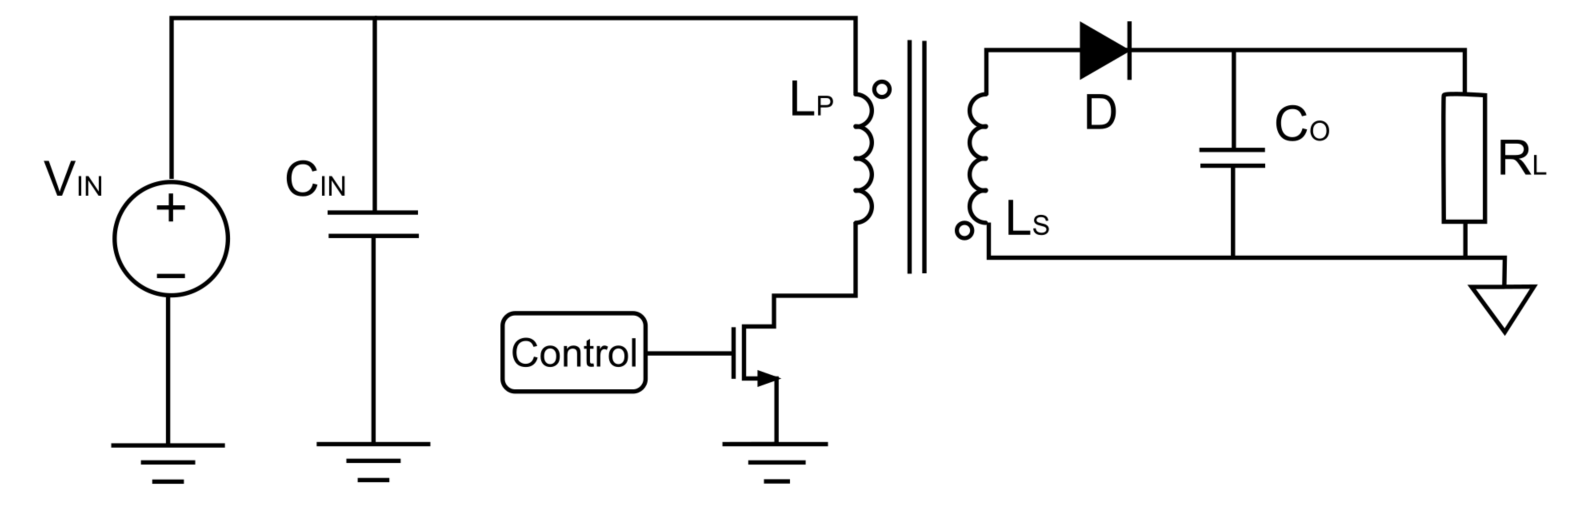 Figure 1: Circuit Schematic of a Flyback Converter